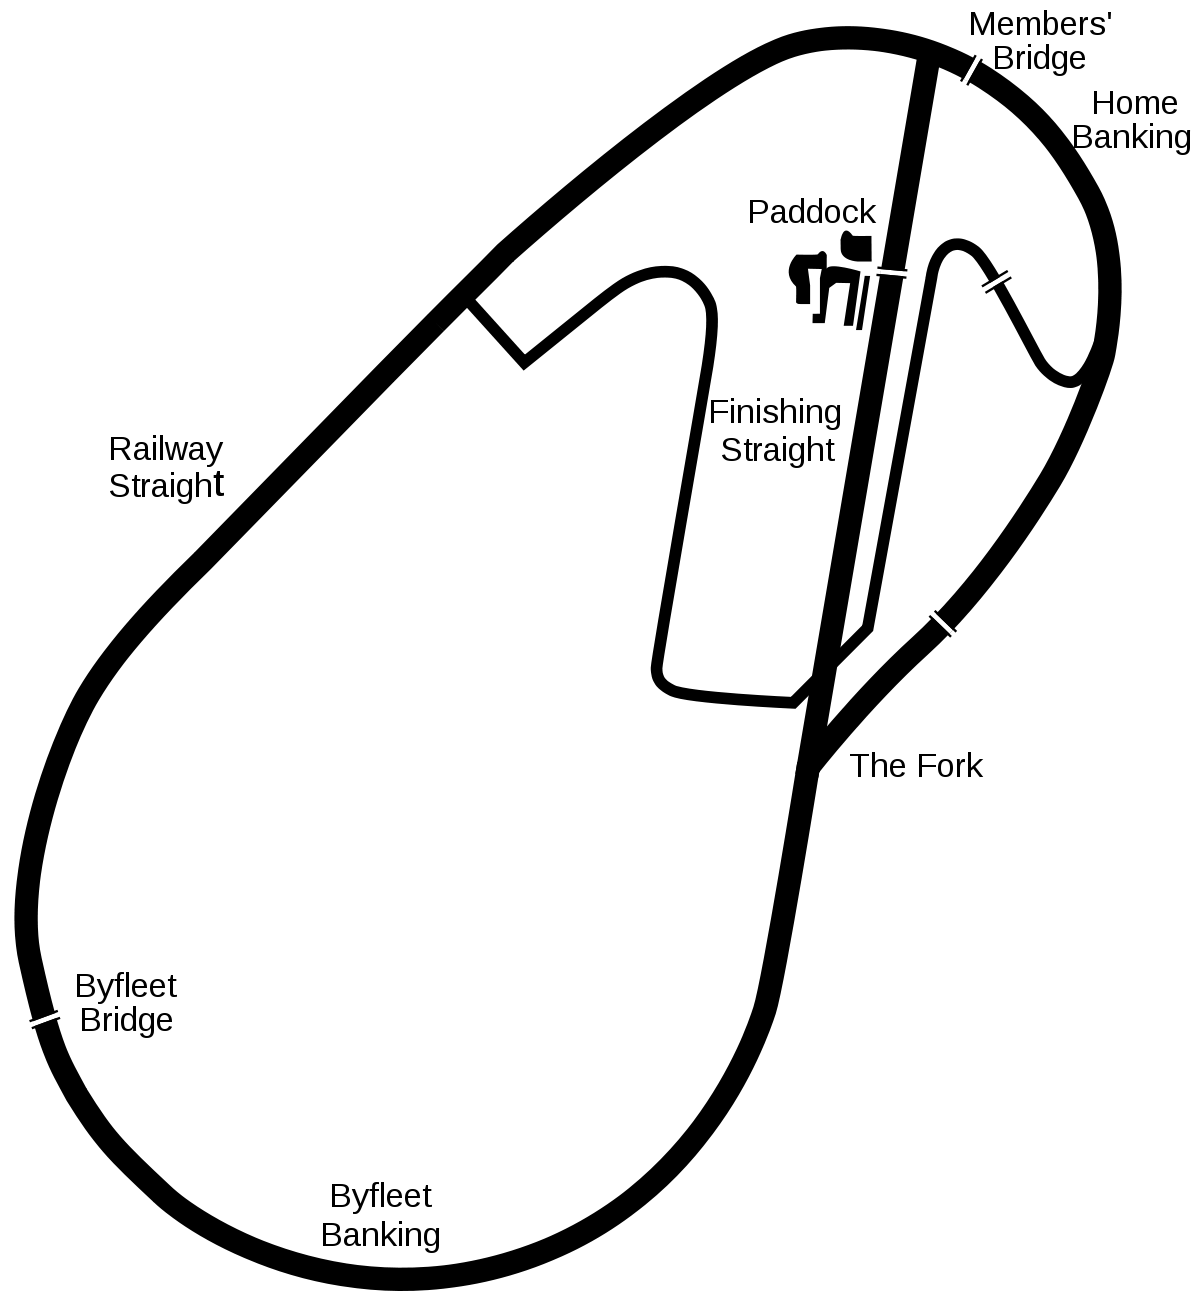 Race Track Drawing At Getdrawings